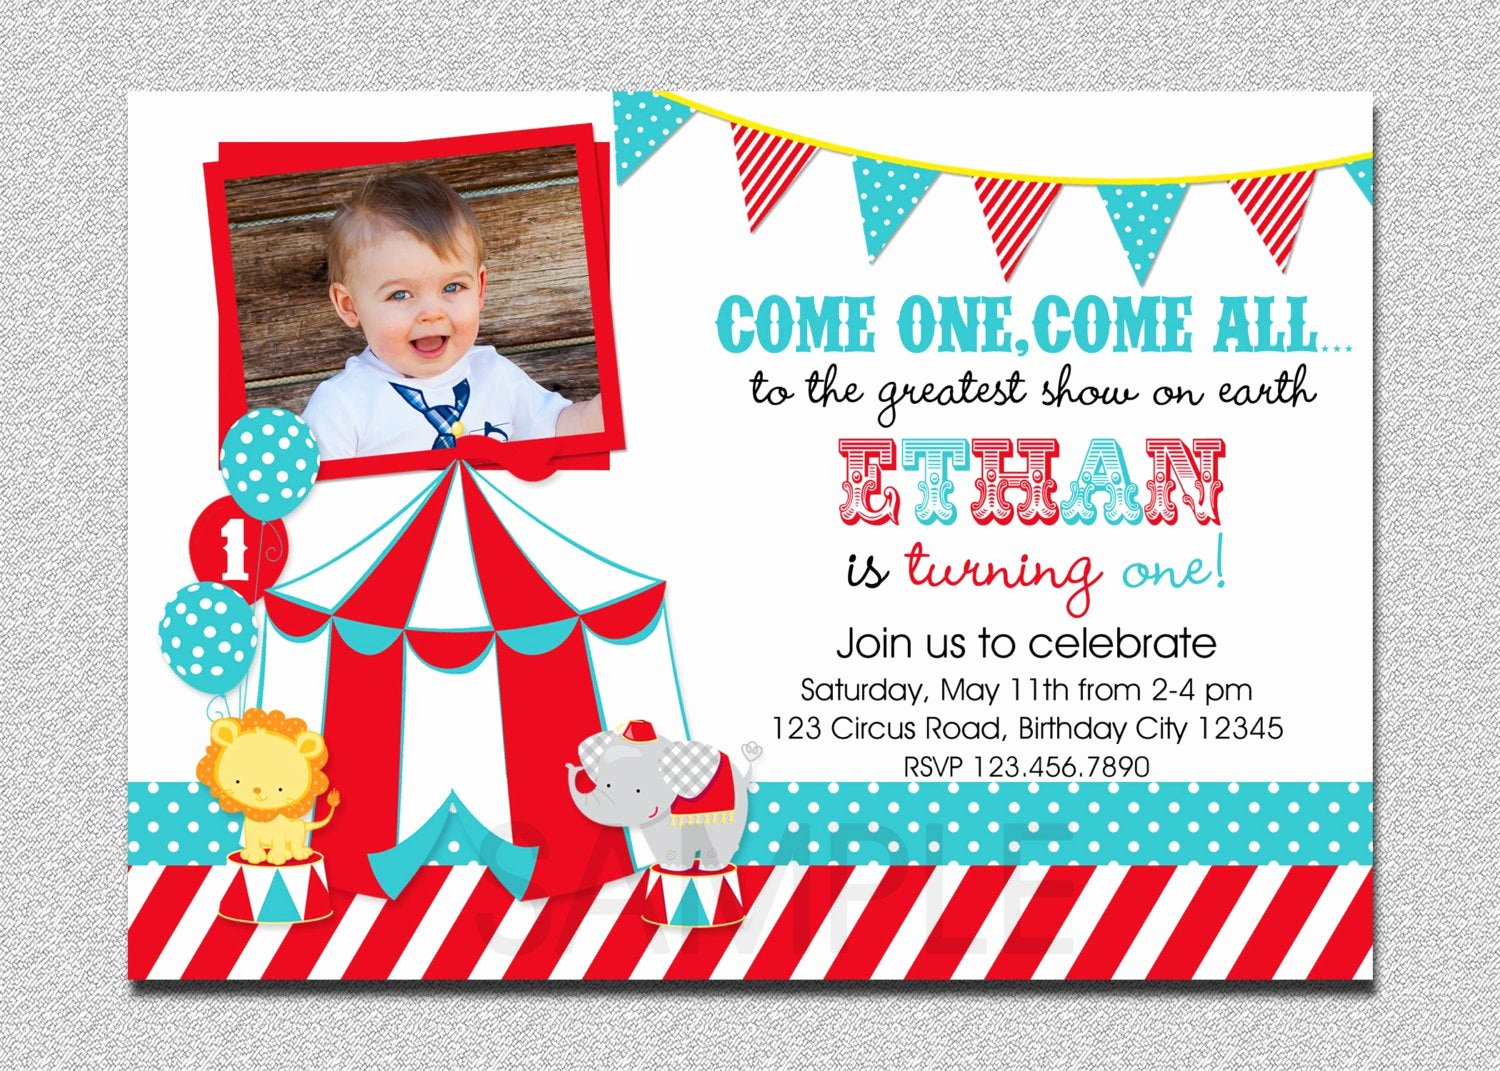 Carnival themed Birthday Invitations Elegant Circus Birthday Invitation 1st Birthday Circus Party